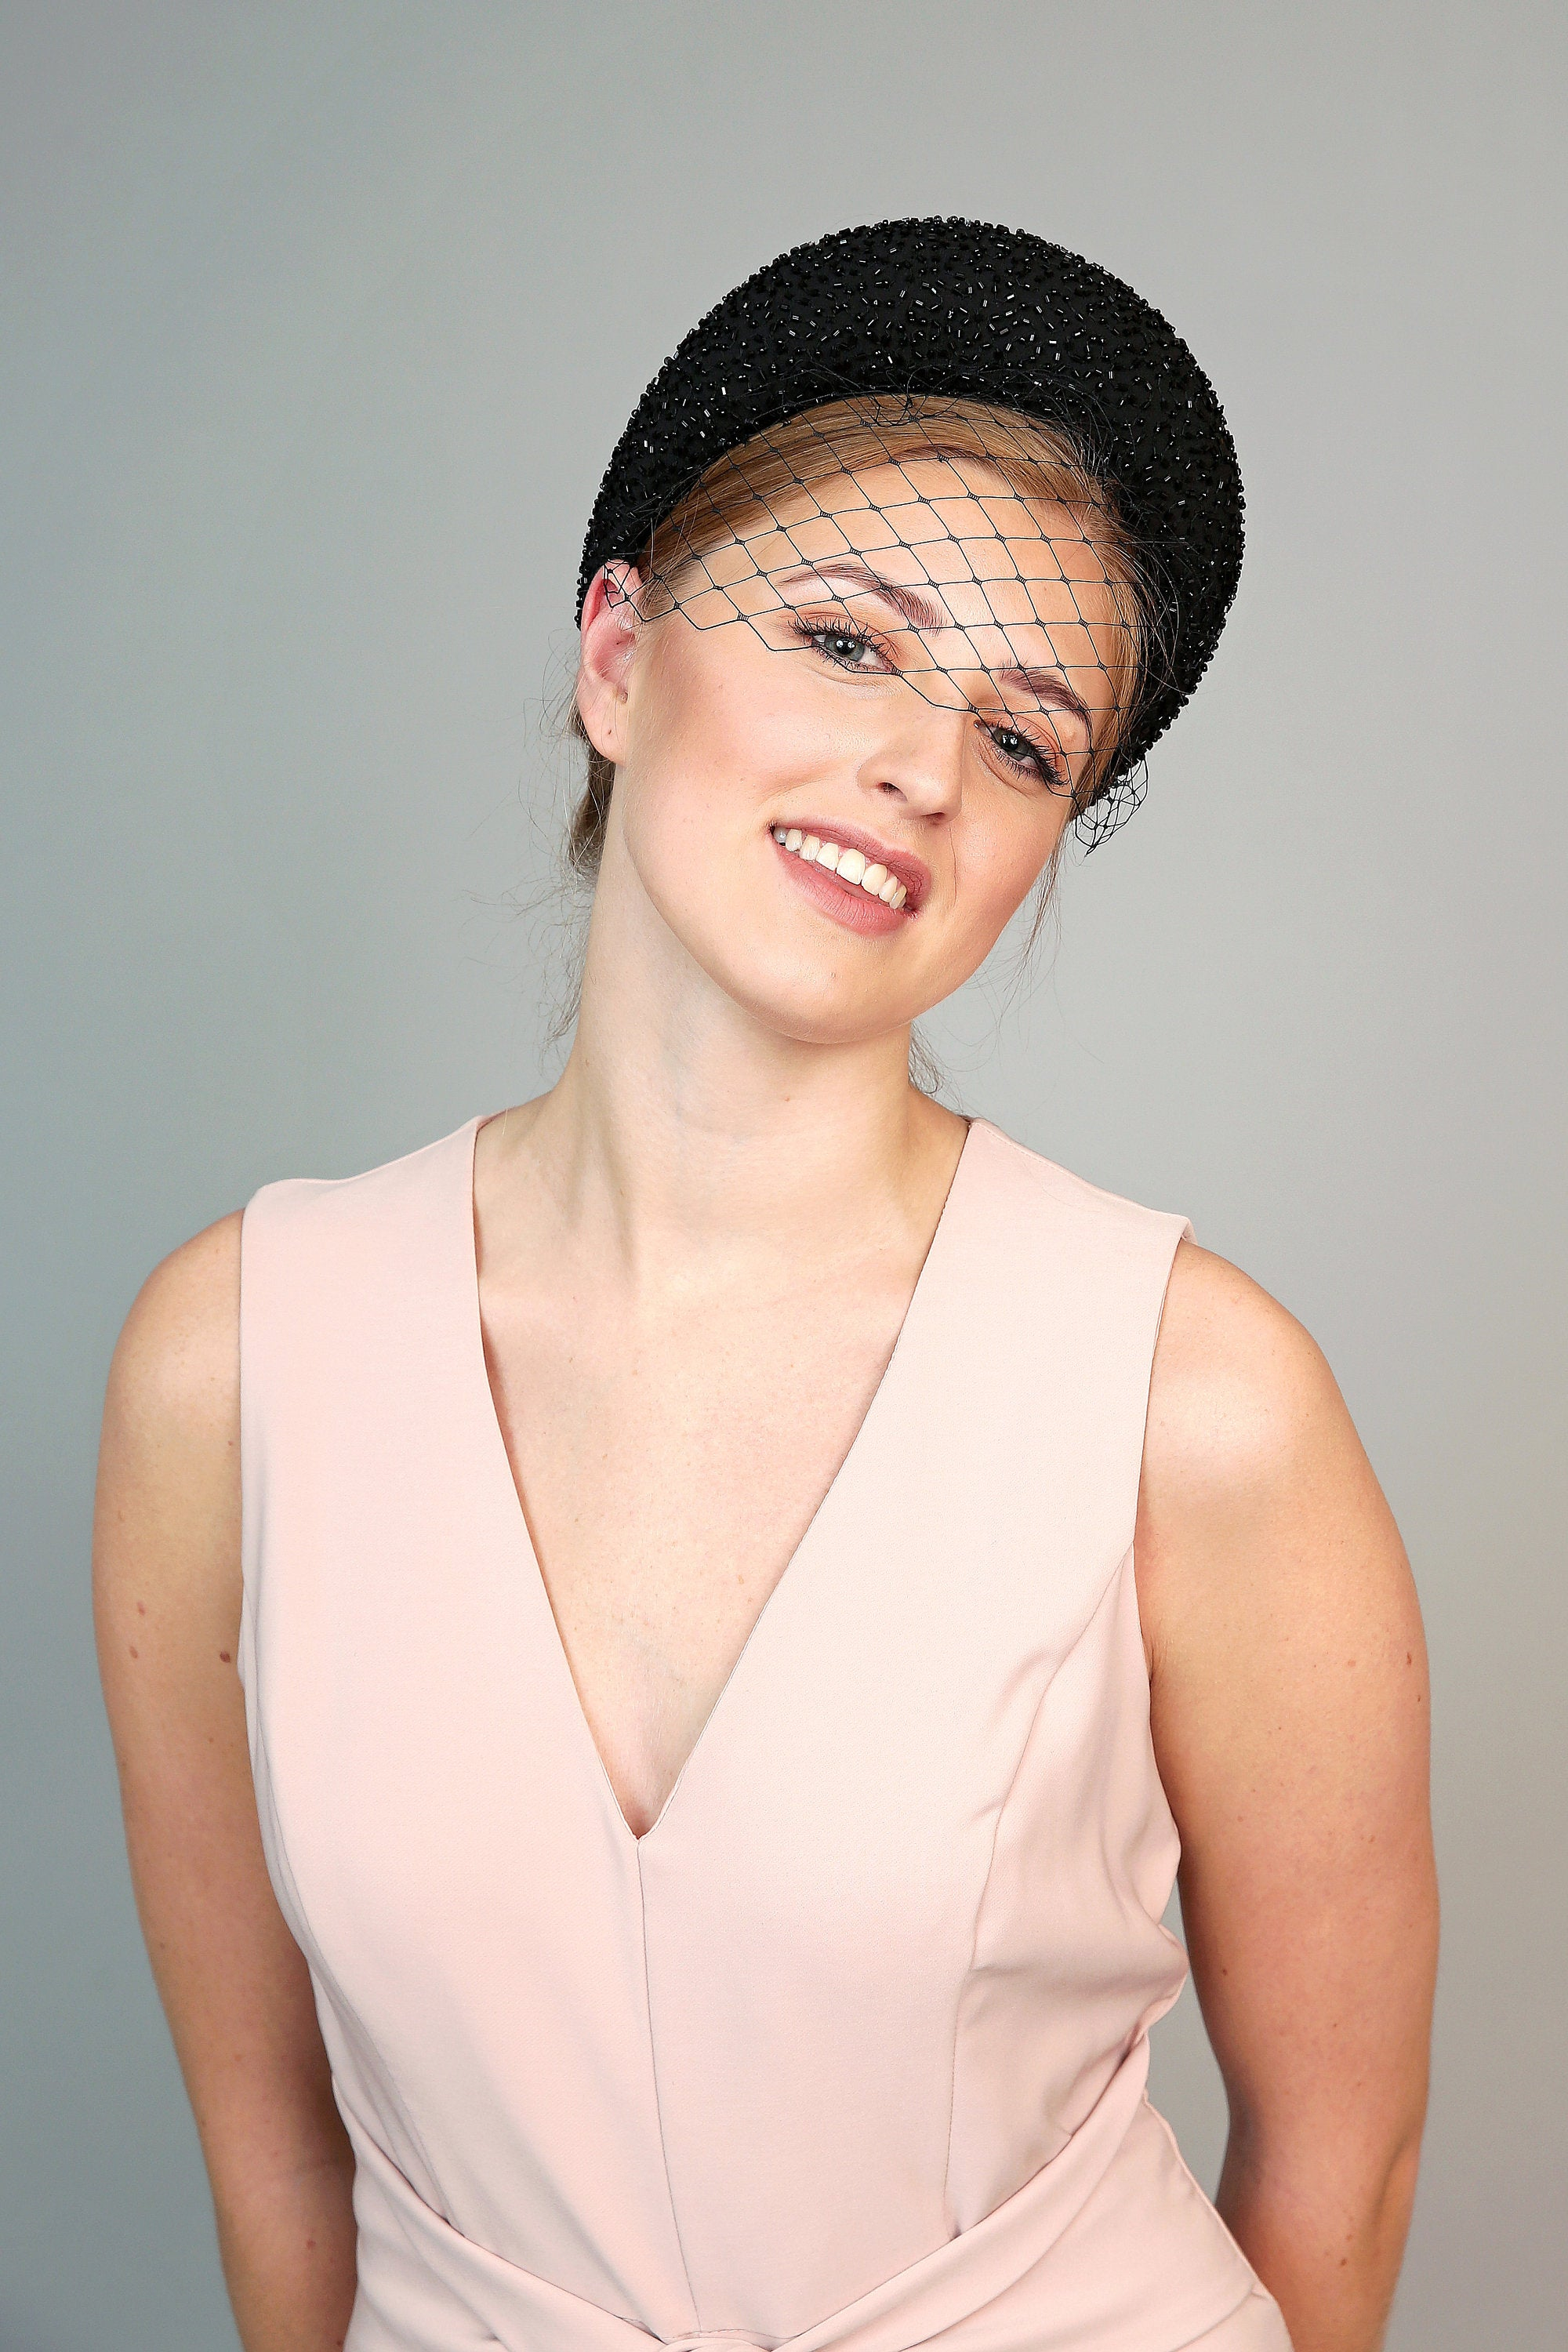 black crystal padded headband in the style of kate middleton, perfect for royal ascot or wedding hat